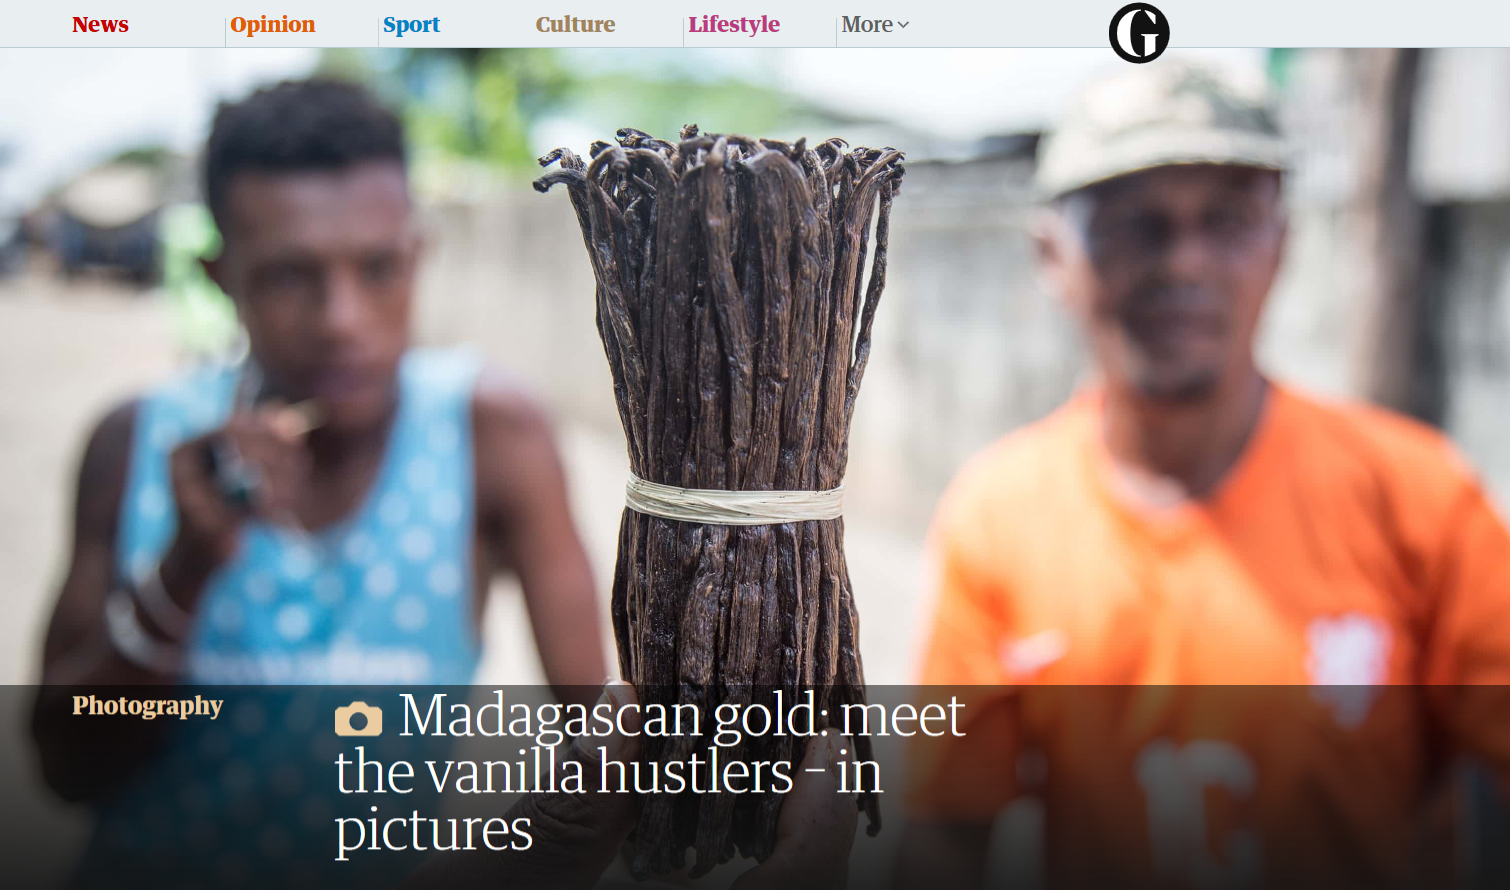 Art and Documentary Photography - Loading FireShot_Capture_011_-_Madagascan_gold__meet_the_vanilla_hus__-_https___www.theguardian.com_artand.png